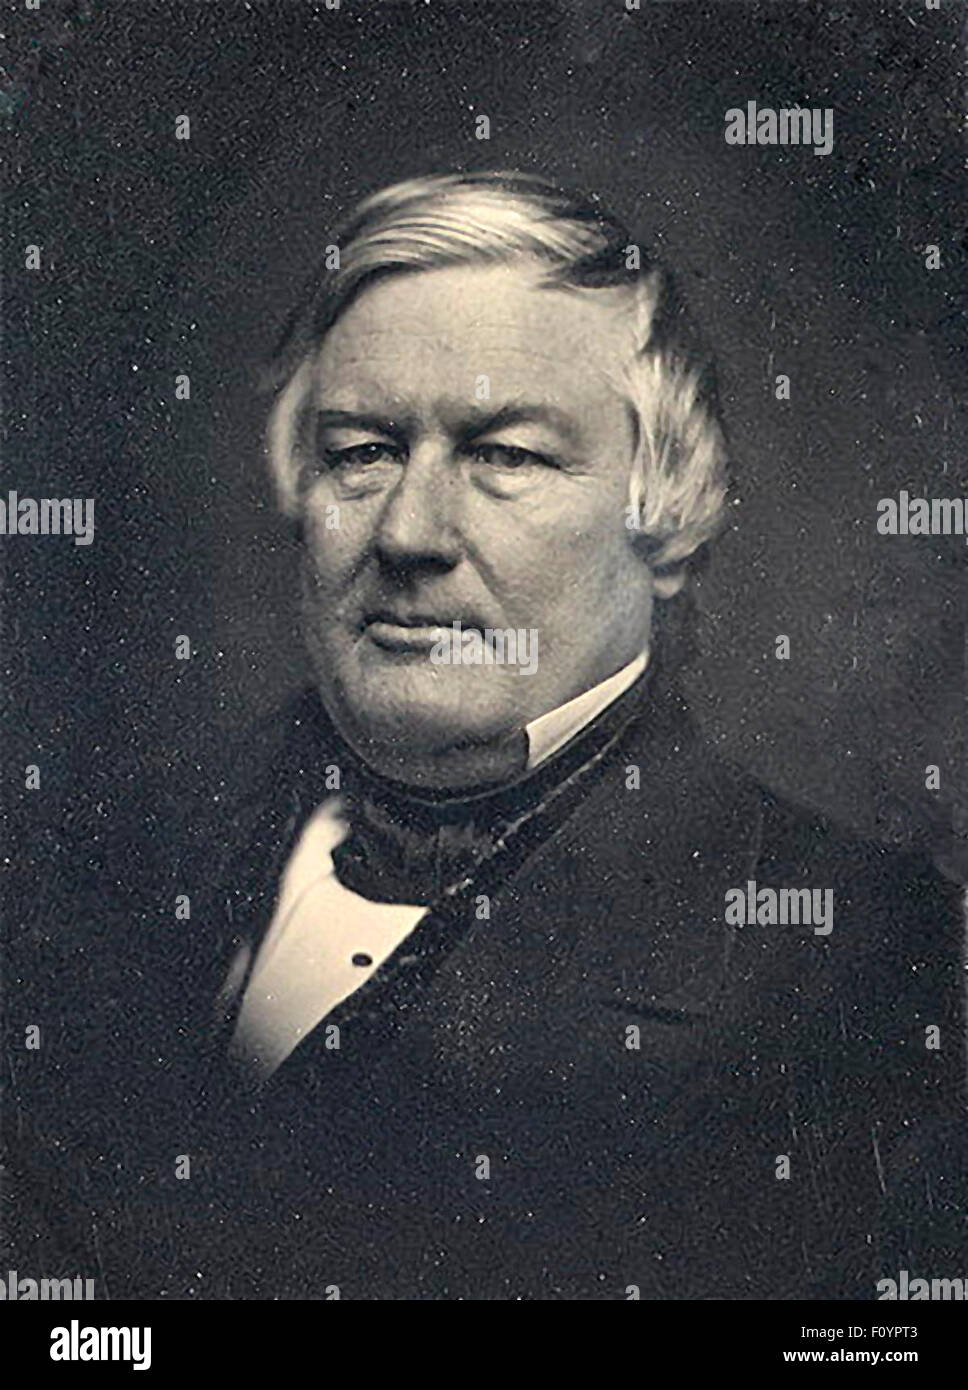 Millard Fillmore, 13th President of the United States Of America, 1850-1853 Stock Photo